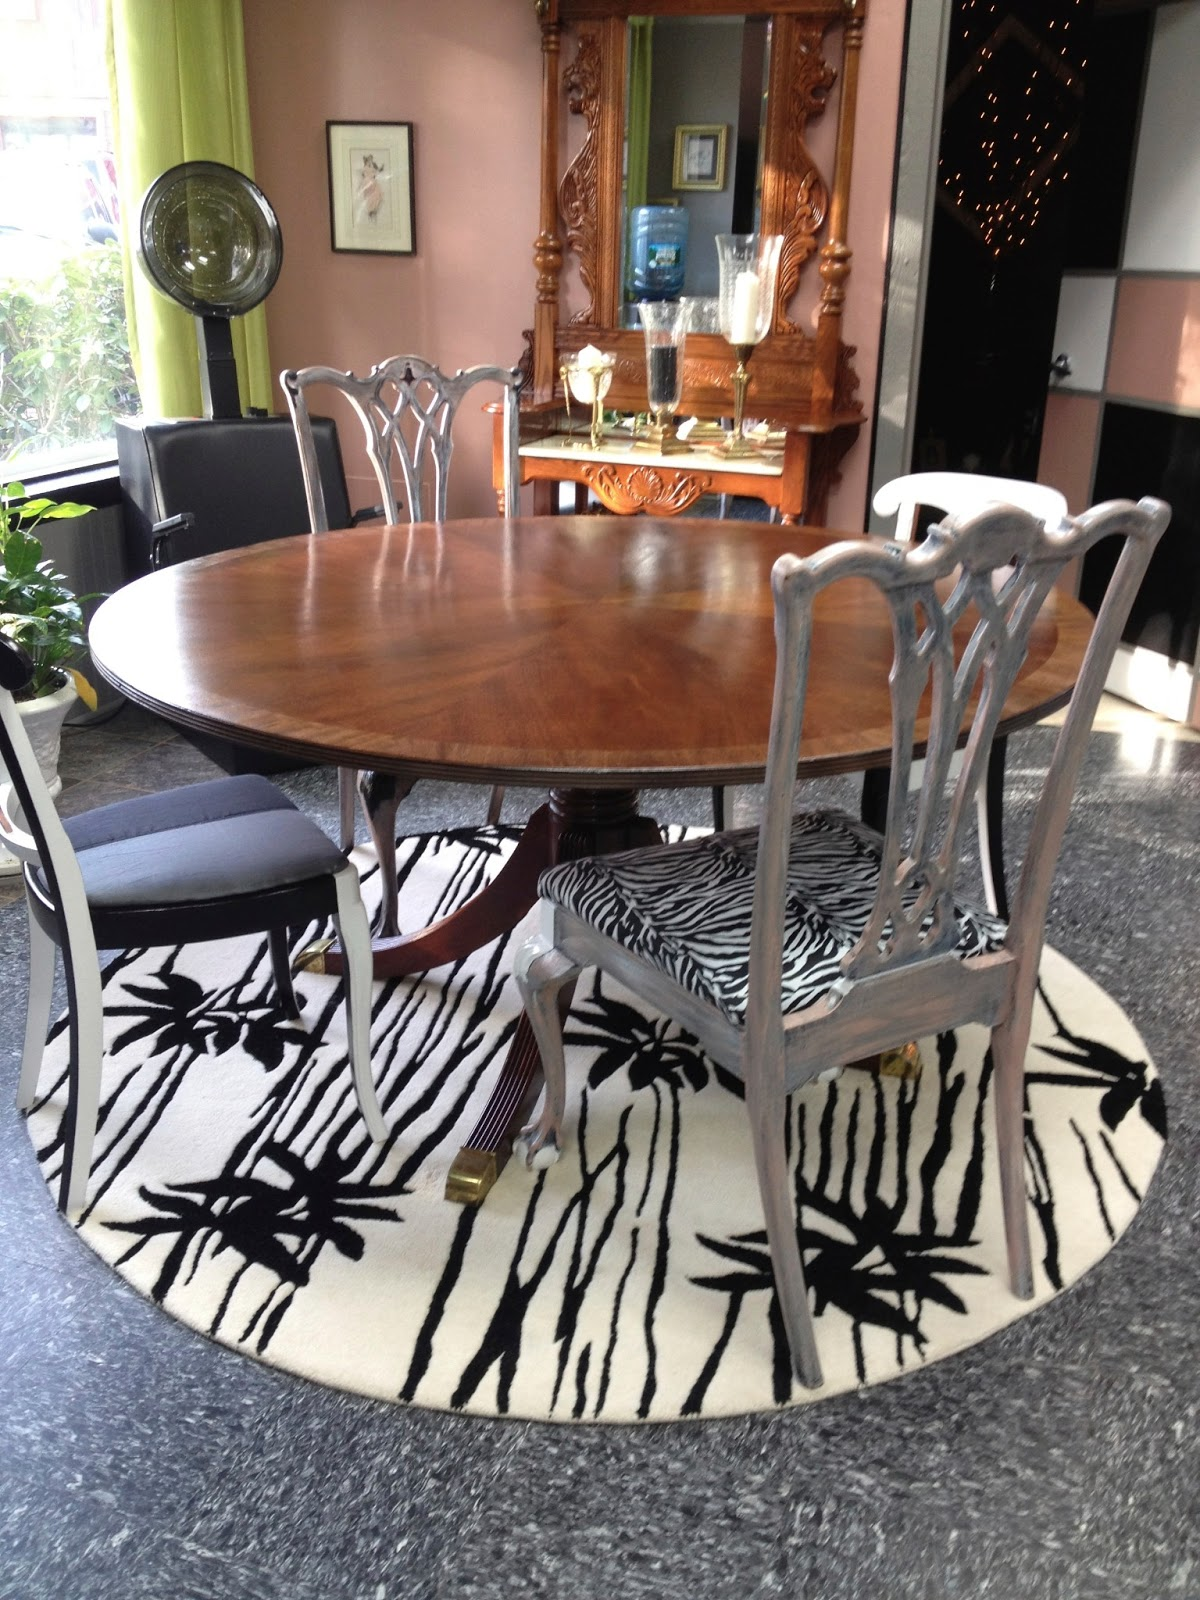 Mismatched Dining Chairs Cheetah Print Folding Chair C Dianne Zweig Kitsch 39n Stuff Painting